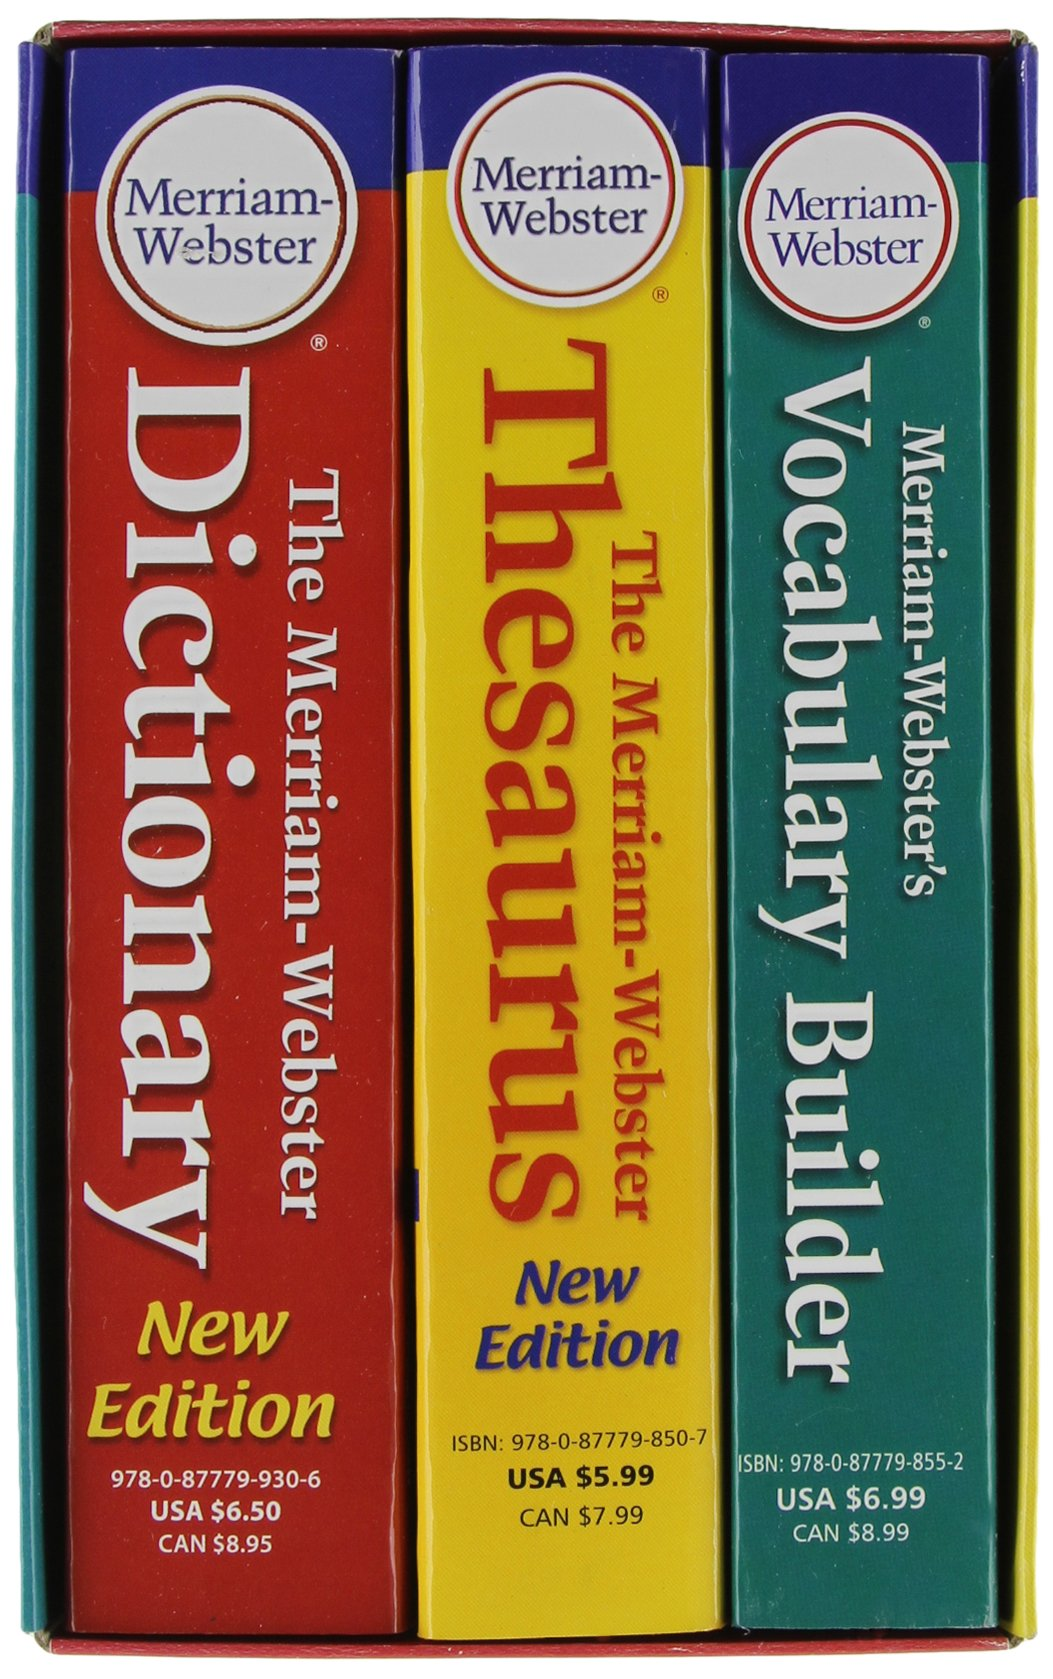 Merriam-Webster's Everyday Language Reference Set: With New Vocabulary Builder Paperback – May 1 2010 Merriam-Webster Inc. 0877798753 General ELT Course Materials